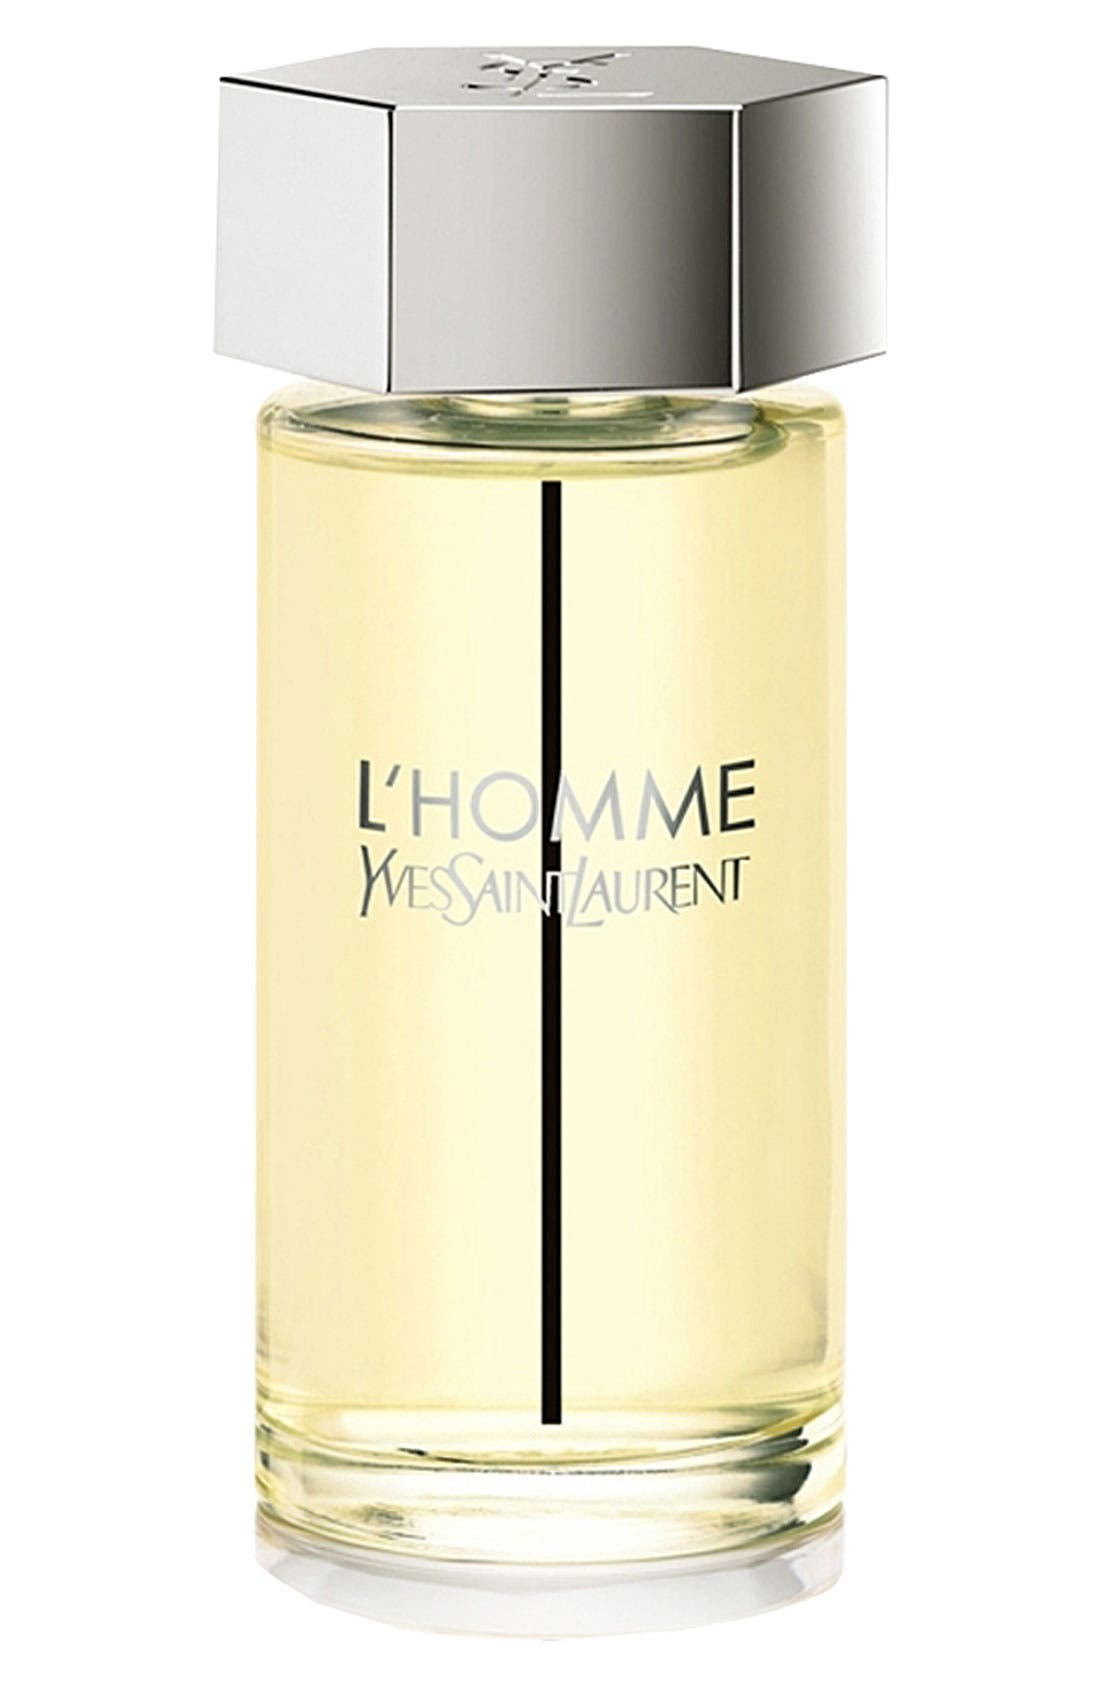 Yves Saint Laurent 'L'Homme' Eau de Toilette (6.7 oz.)